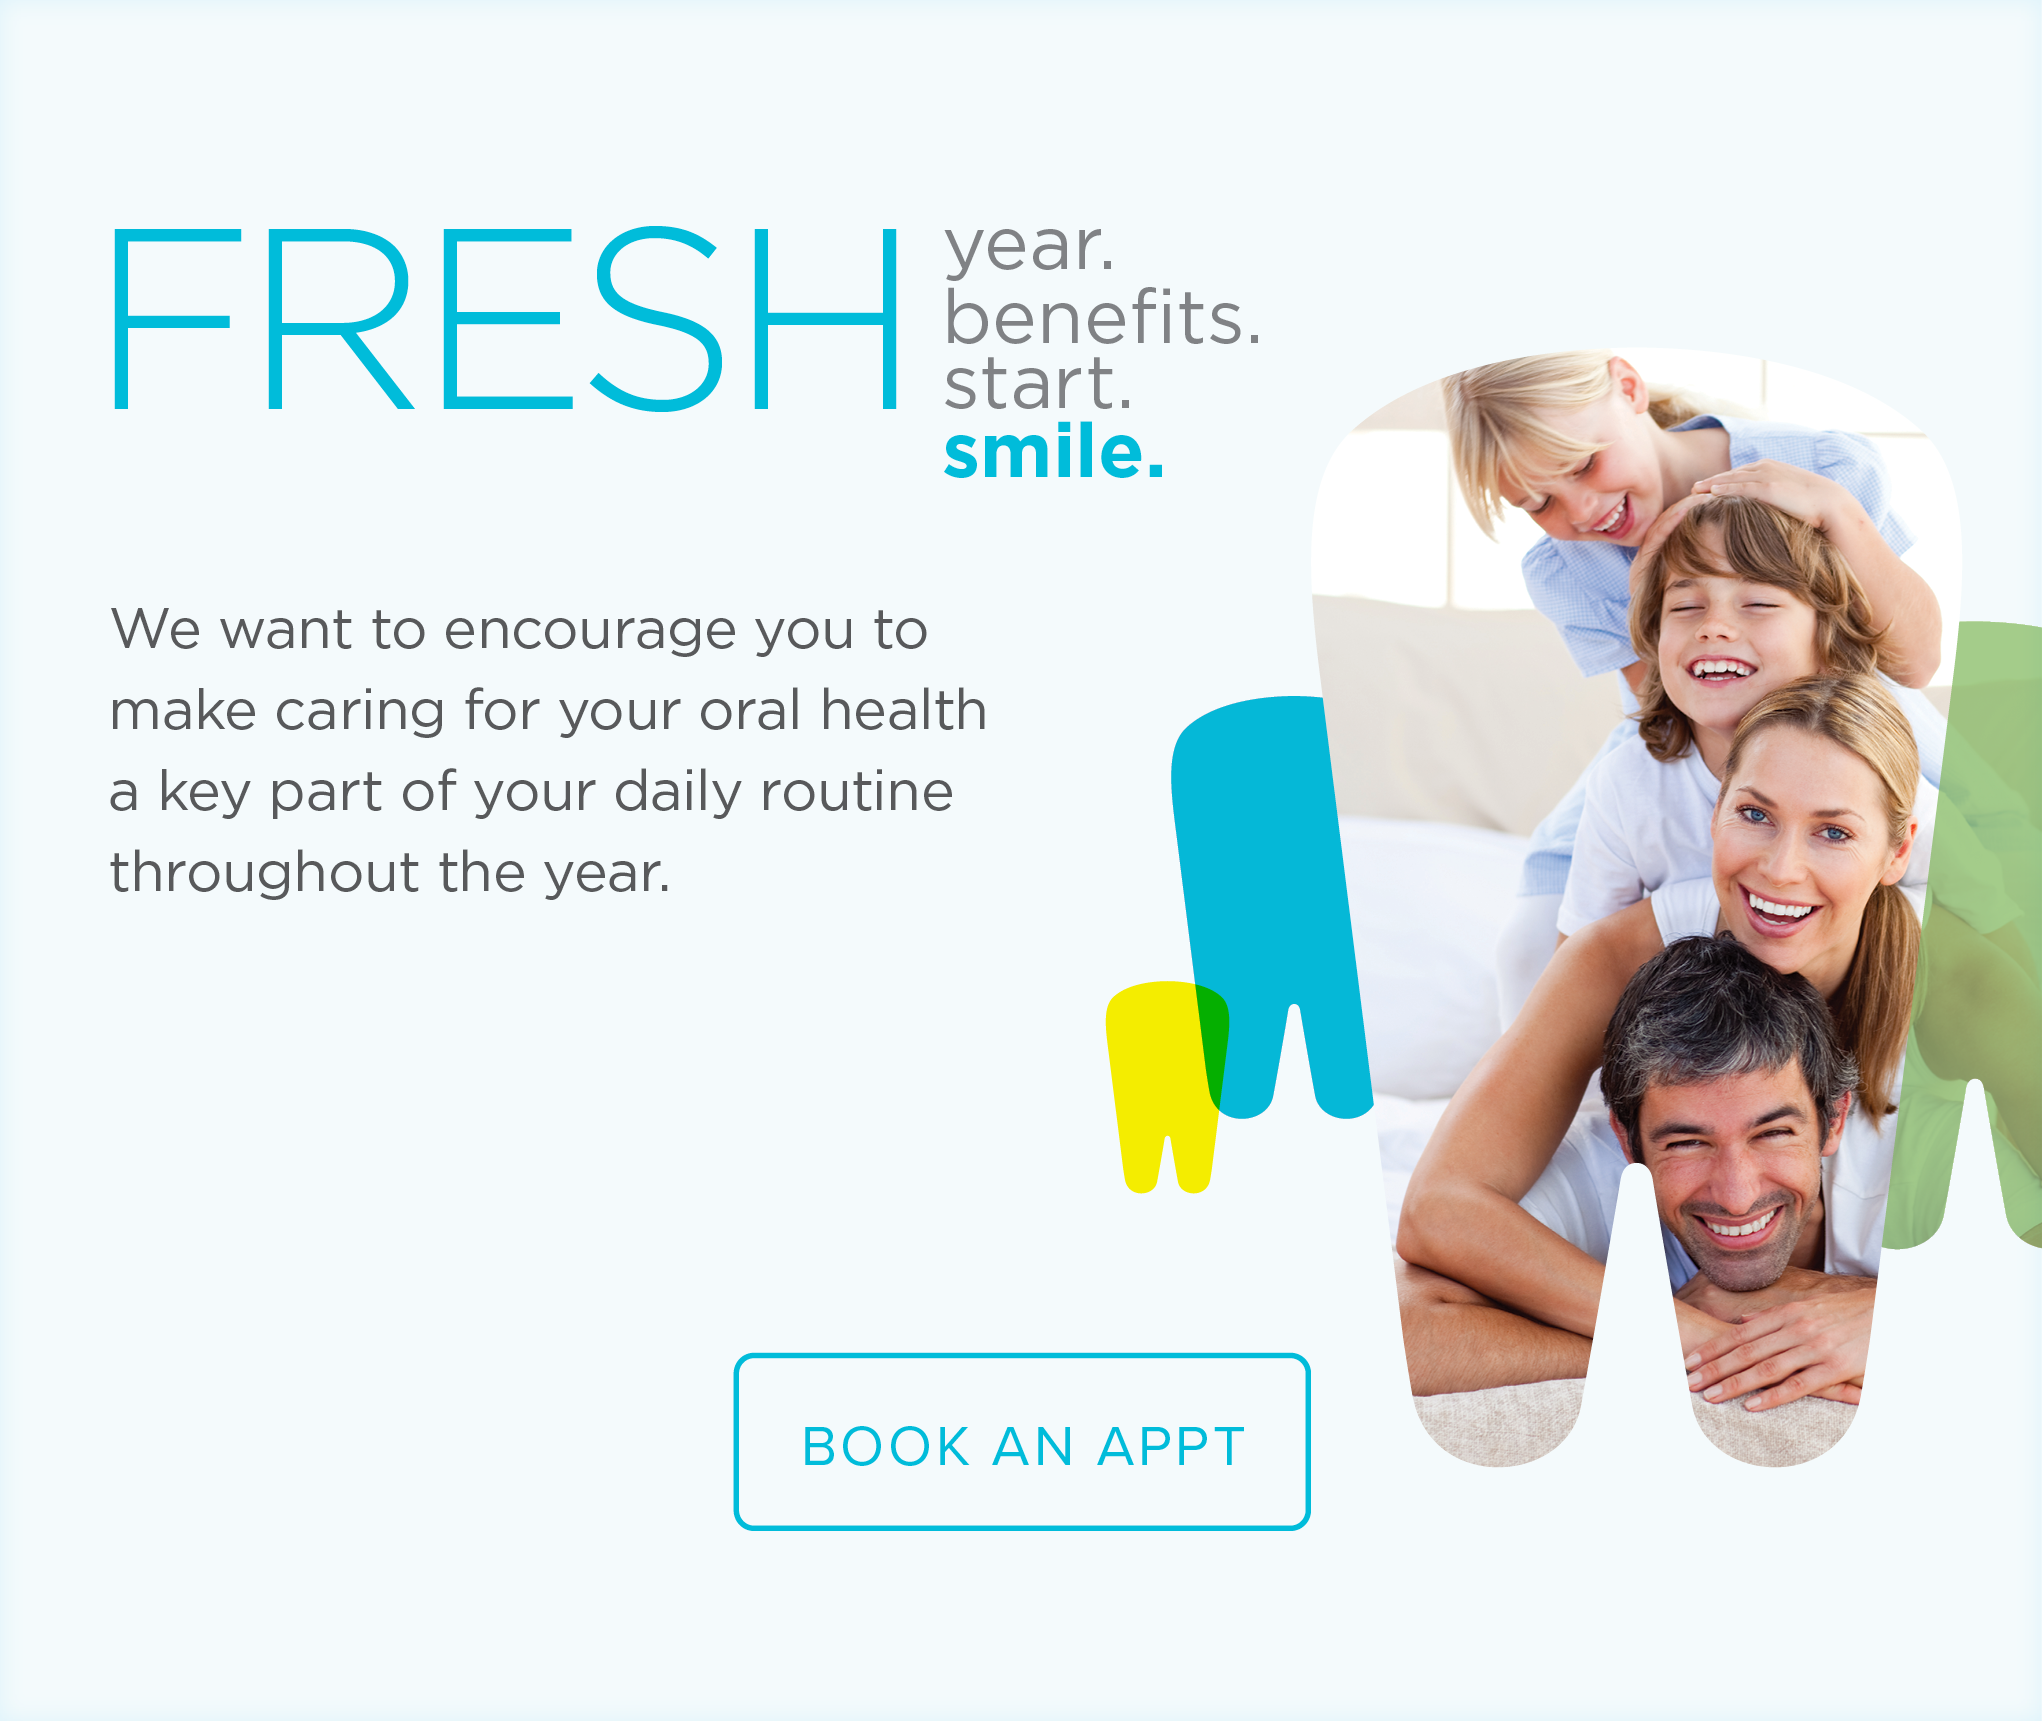 South Oceanside Dental Group and Orthodontics - Make the Most of Your Benefits